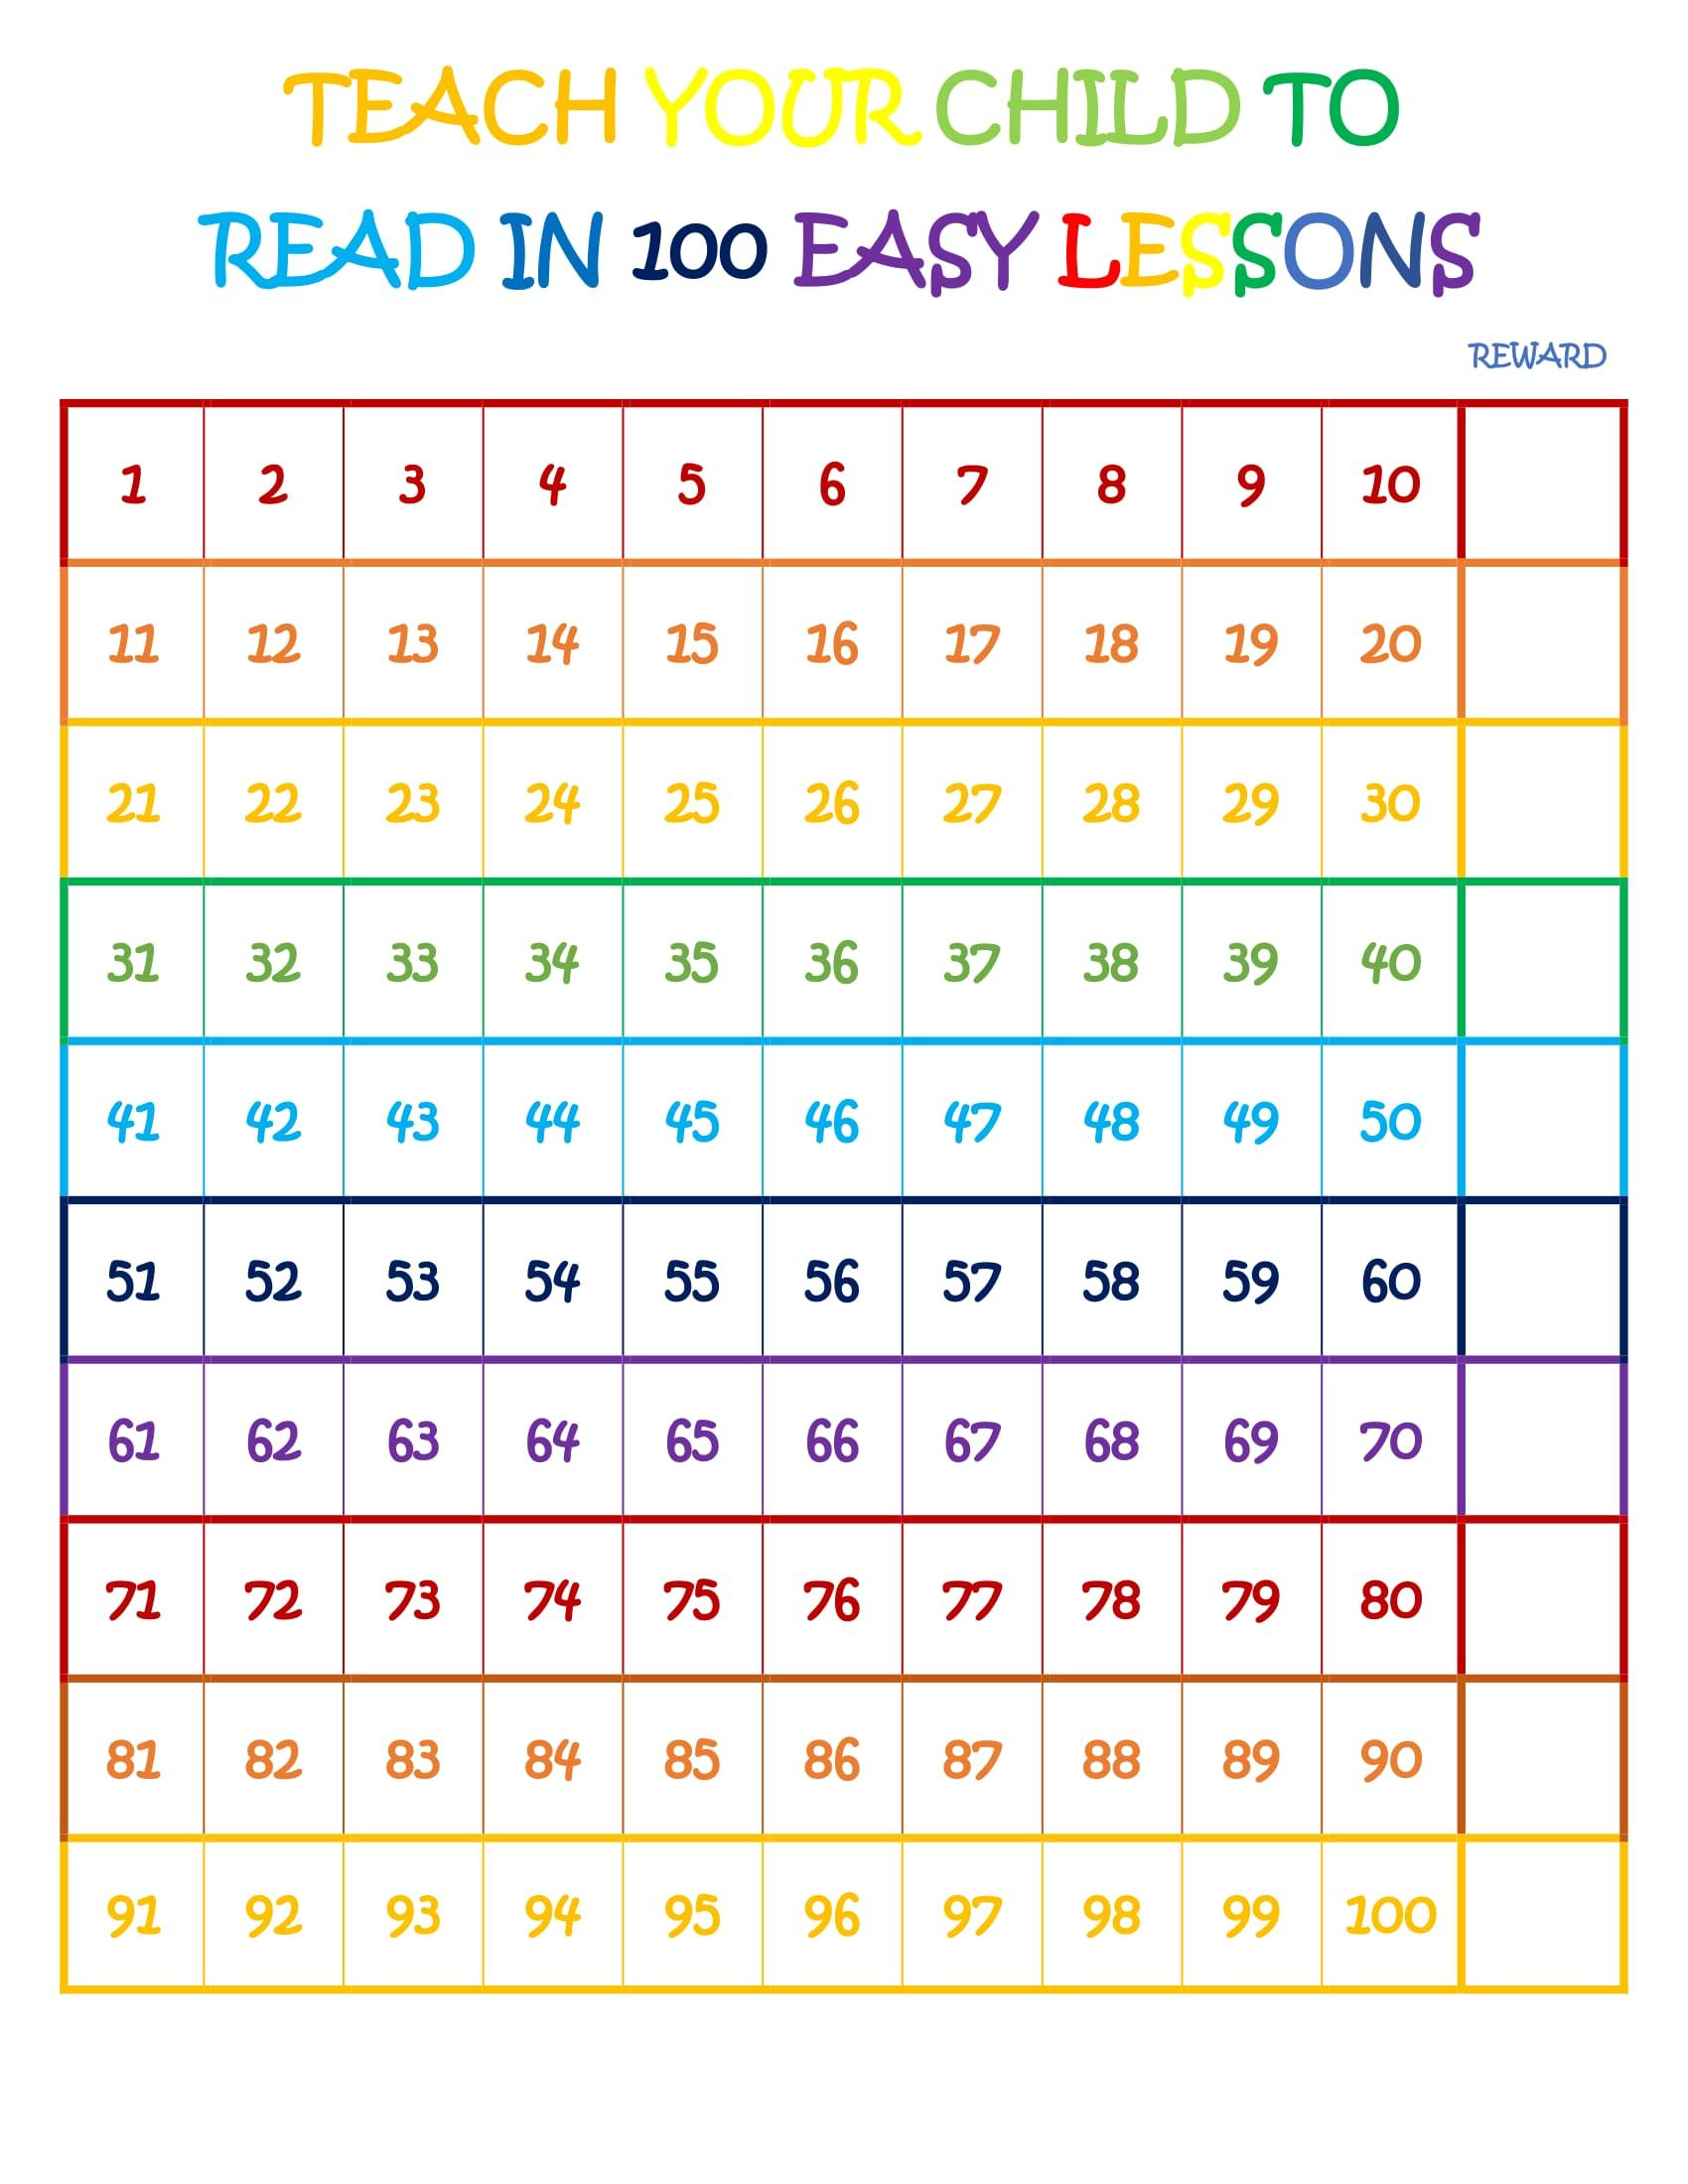 Lesson Completion Chart For Teach Your Child To Read In 100 Easy Lessons With Reward Column For